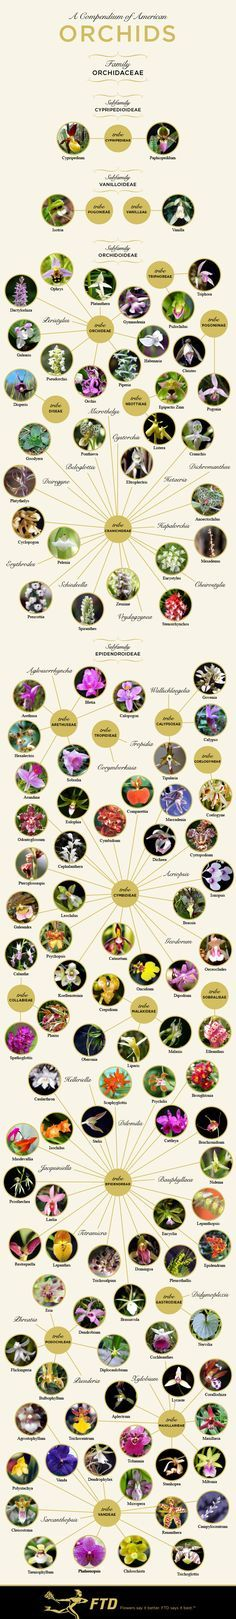 Types of Orchids by ftd #Infographic #Orchids